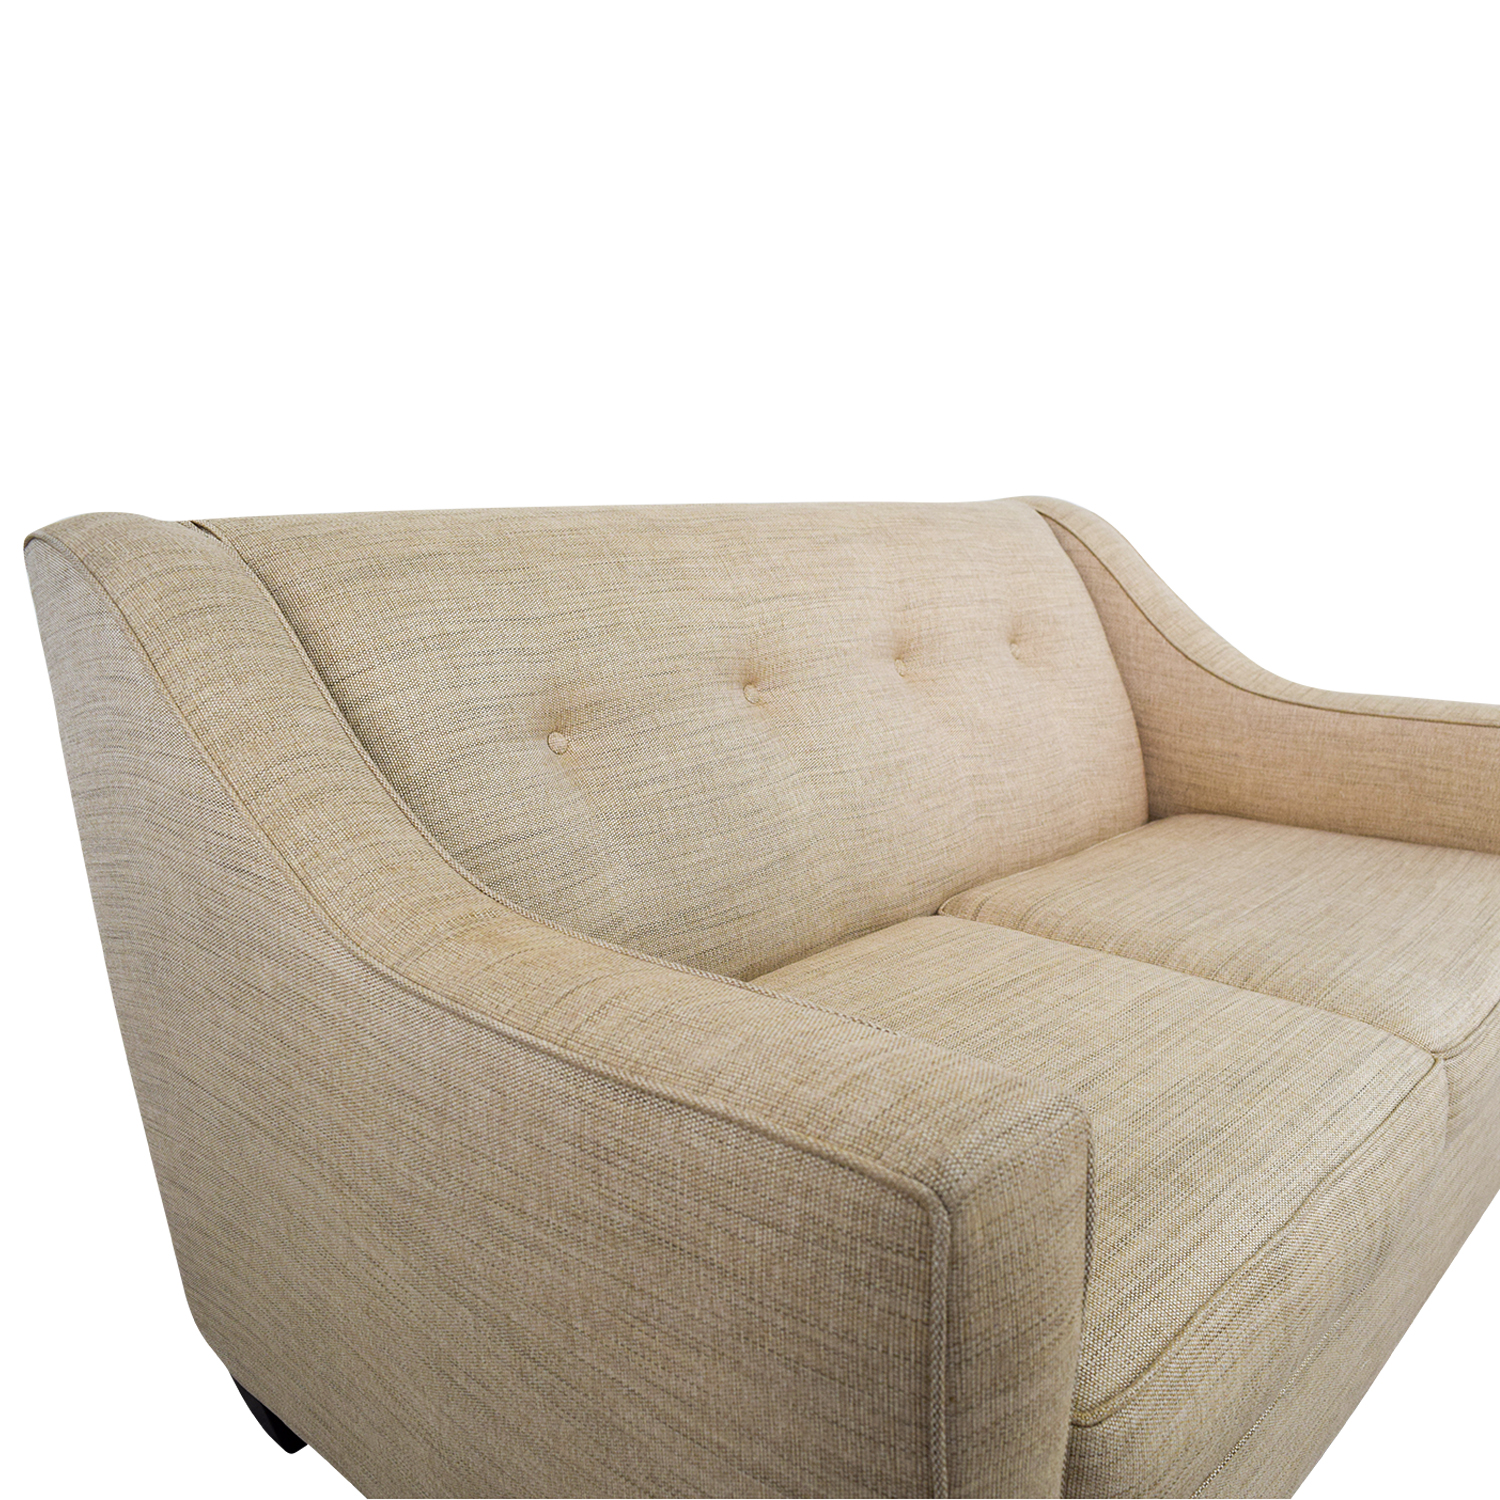 79 Off Bob S Furniture Bob S Furniture Caleb Tan Tufted